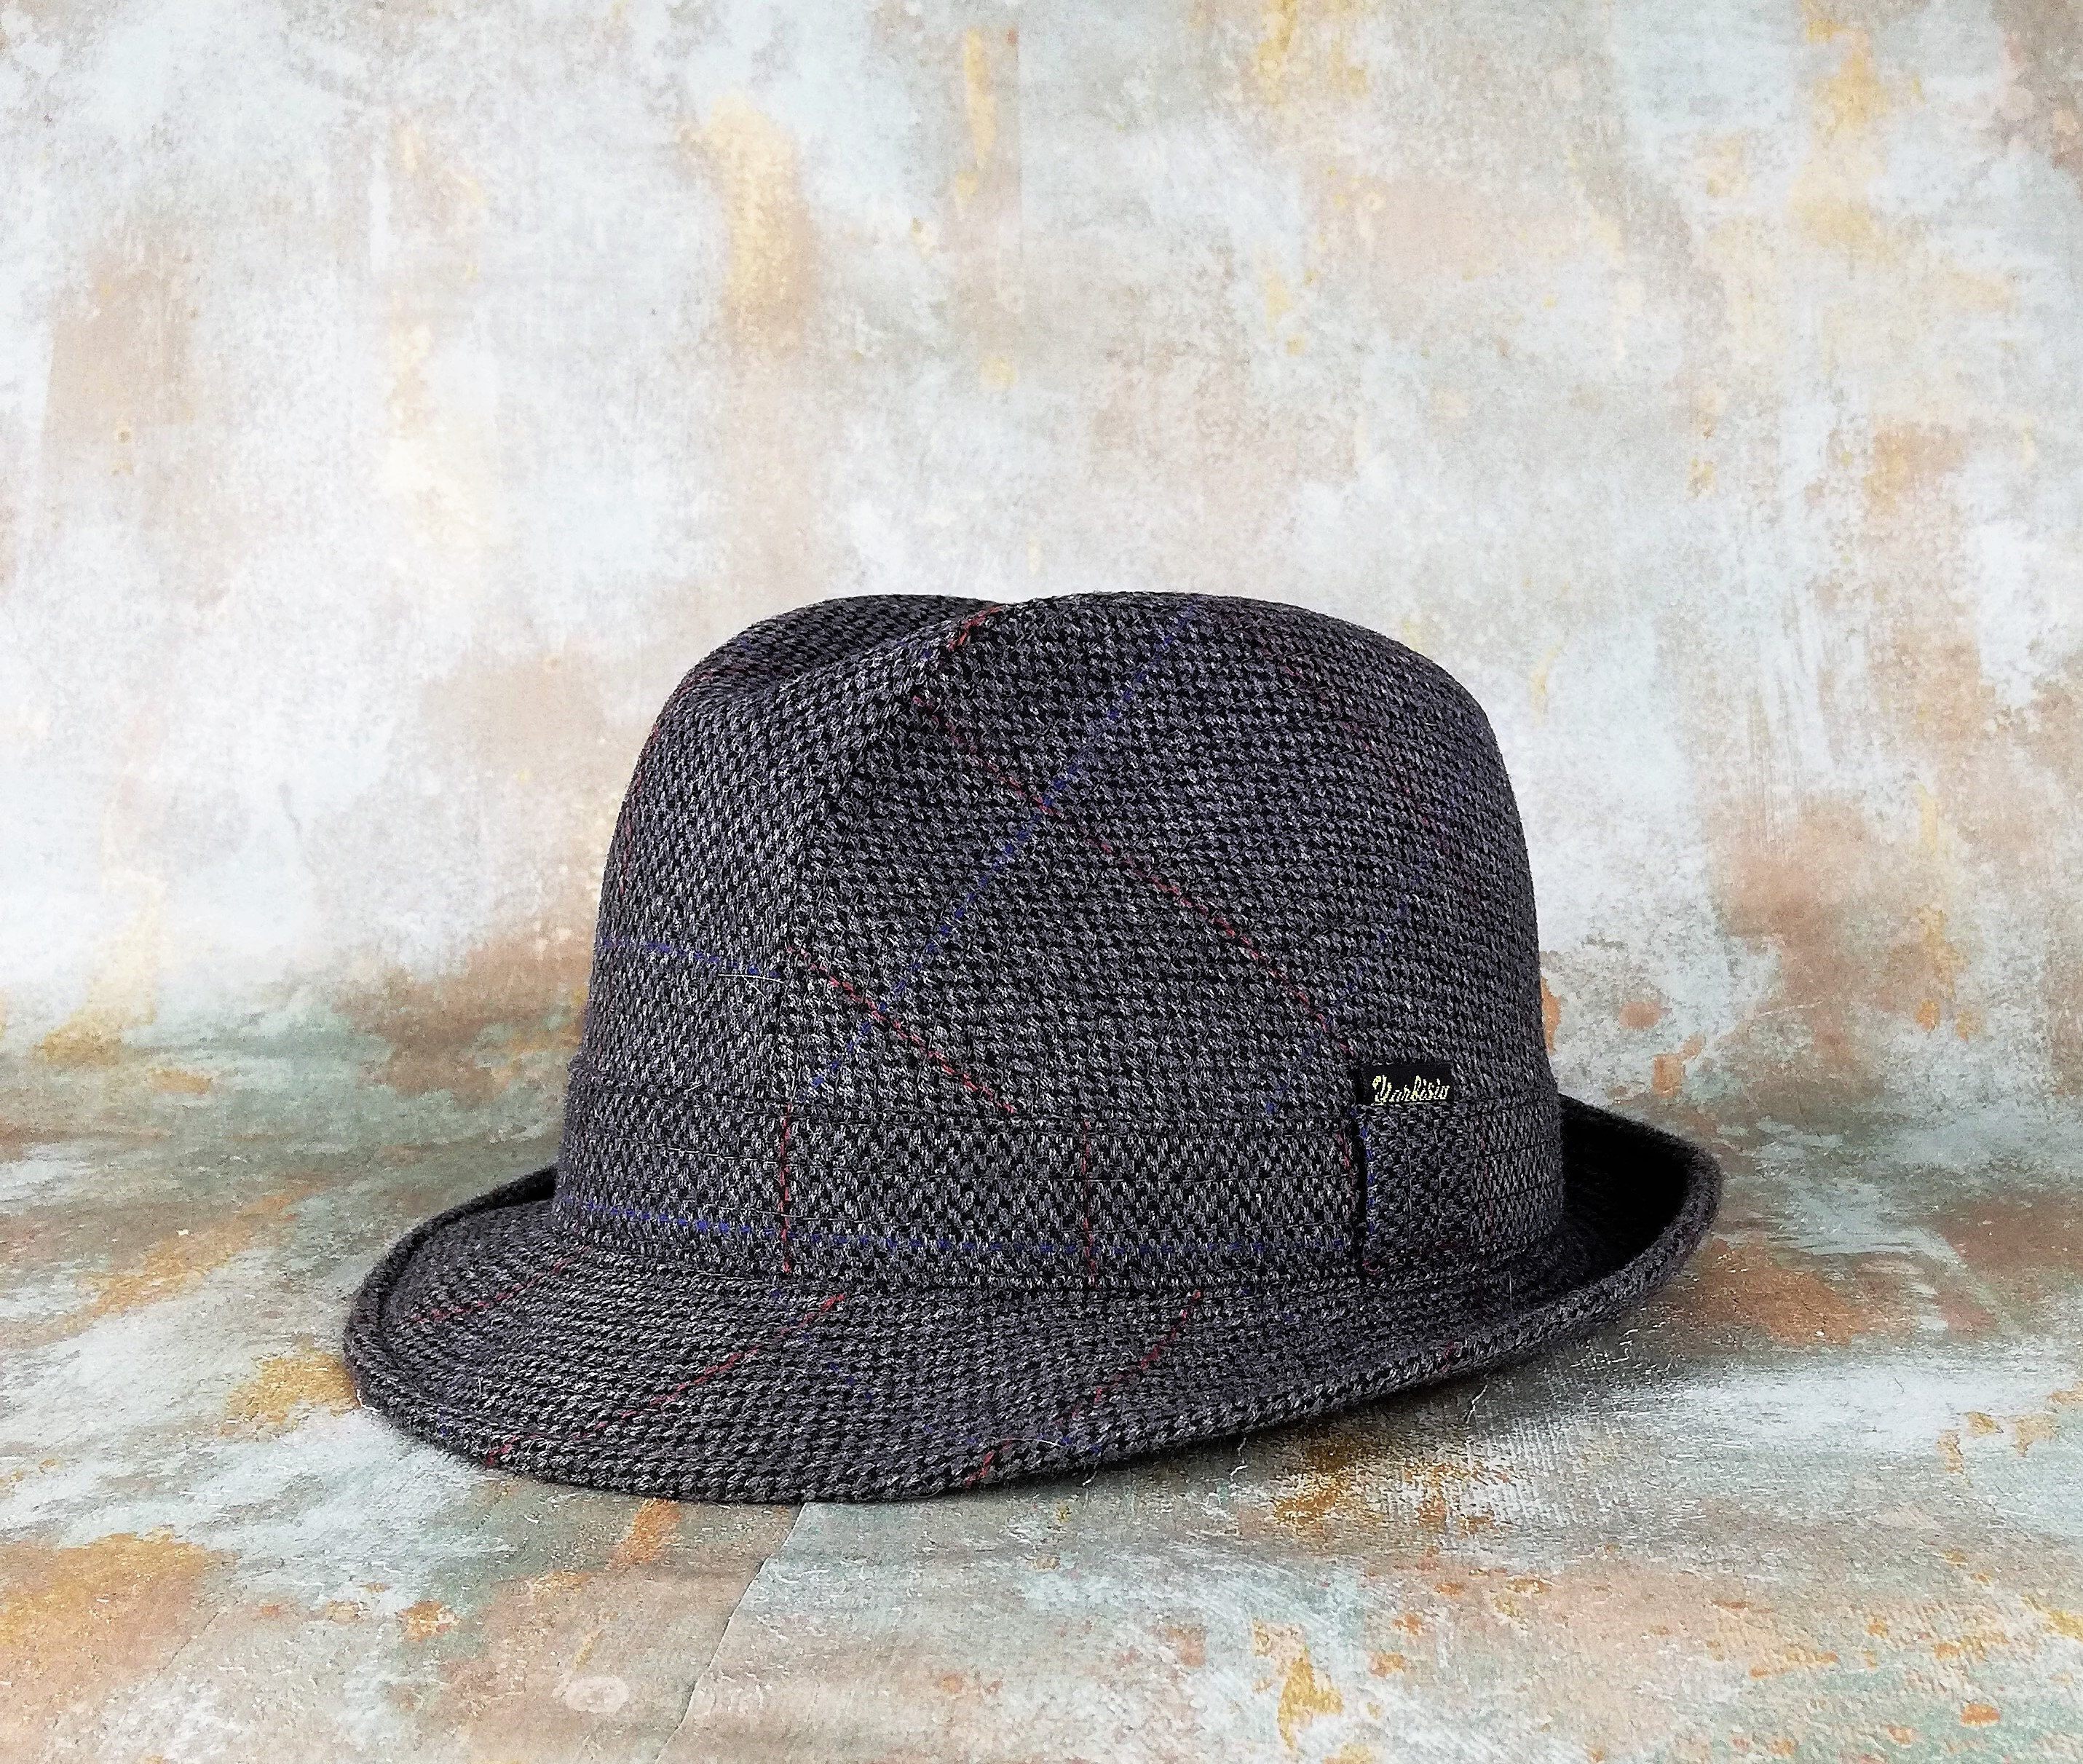 cfd287d2b7ea8 Vintage Hat. Tweed Blue-Gray. Hats for men. Retro style.